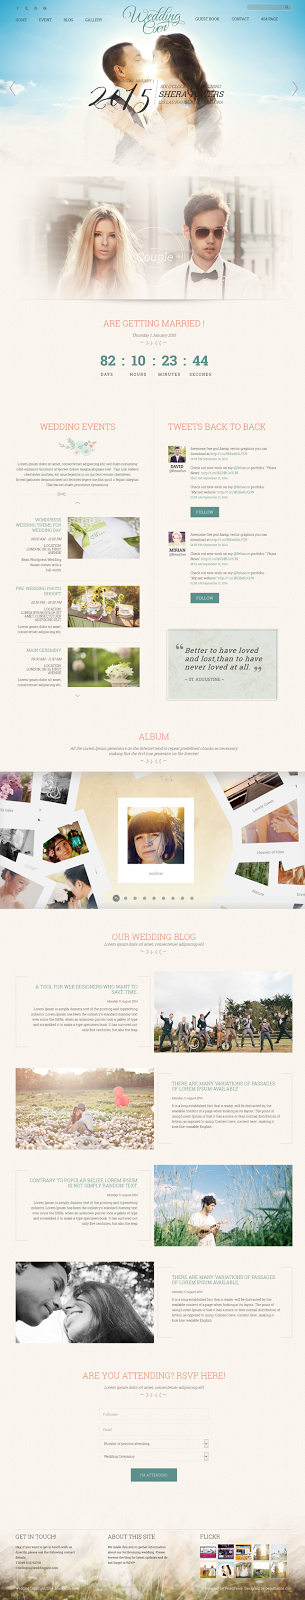 Free WordPress Wedding Website Theme